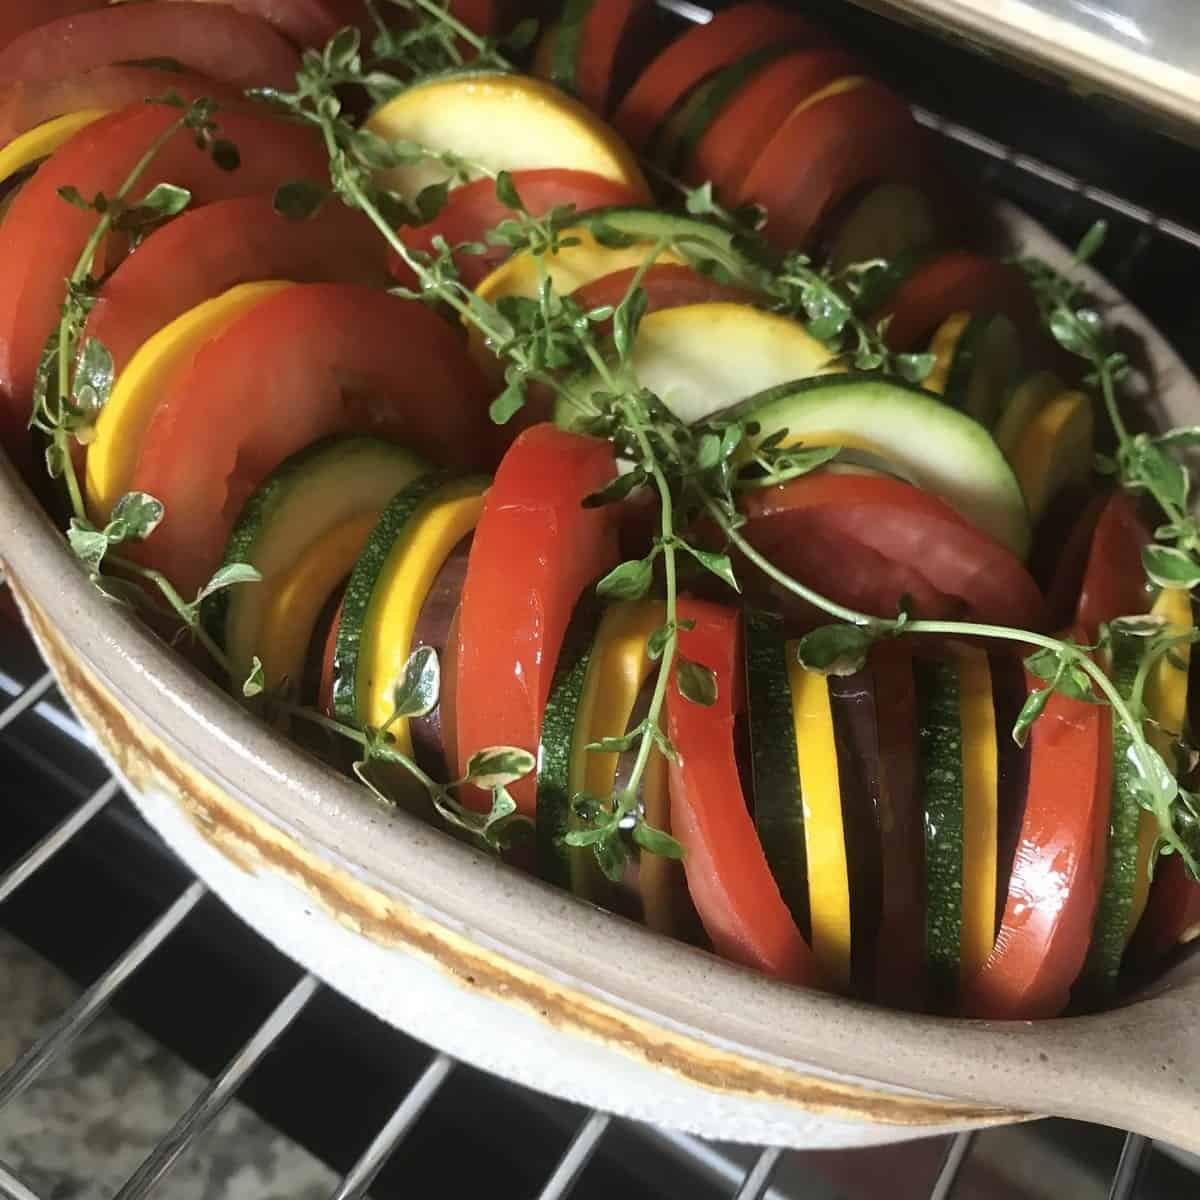 Mediterranean Roasted Vegetables in an oven.